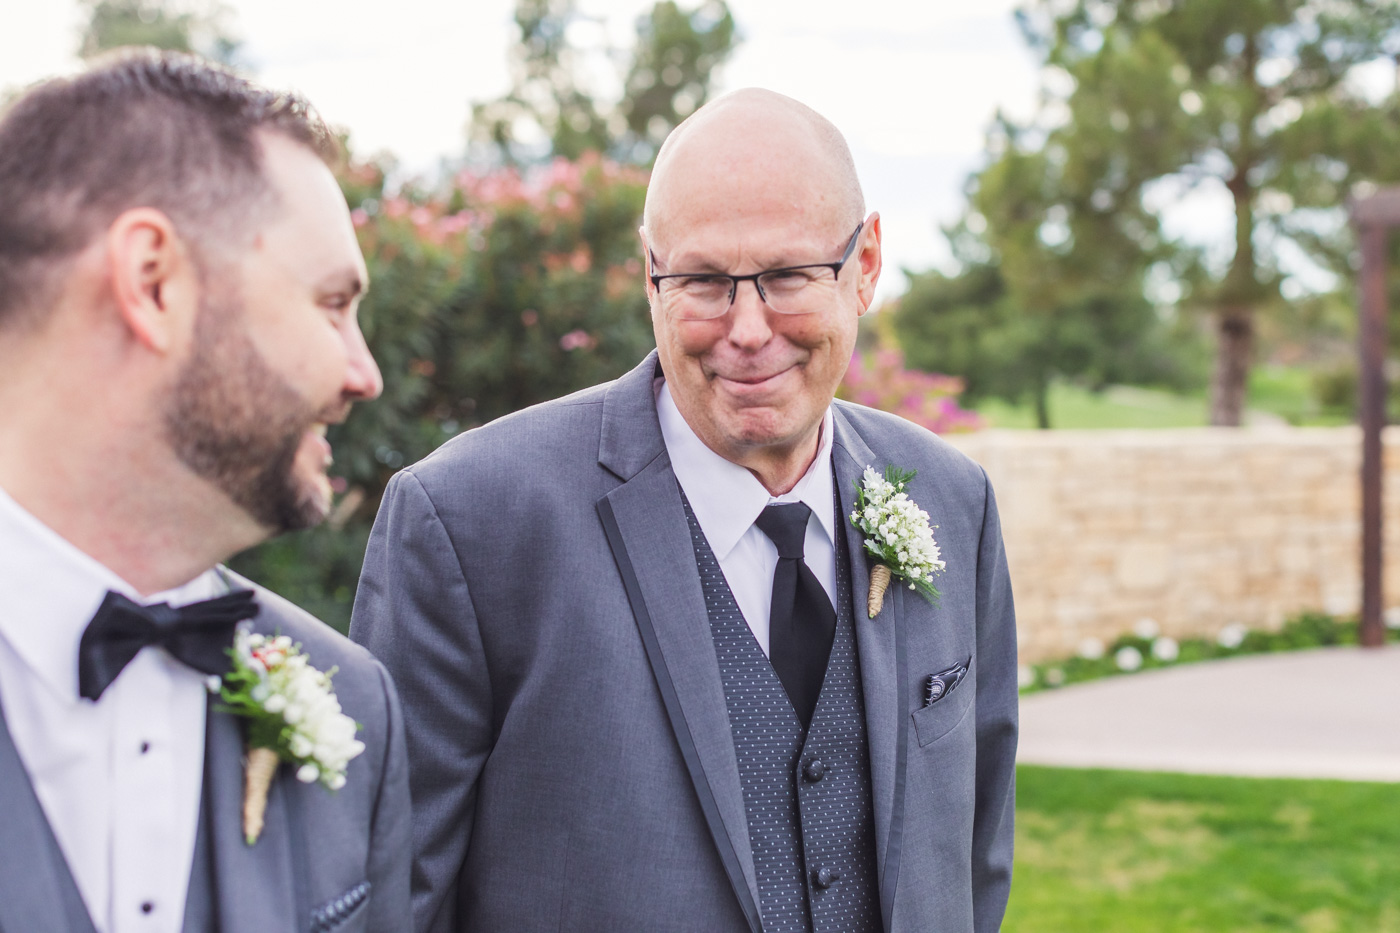 groom-and-father-at-wedding